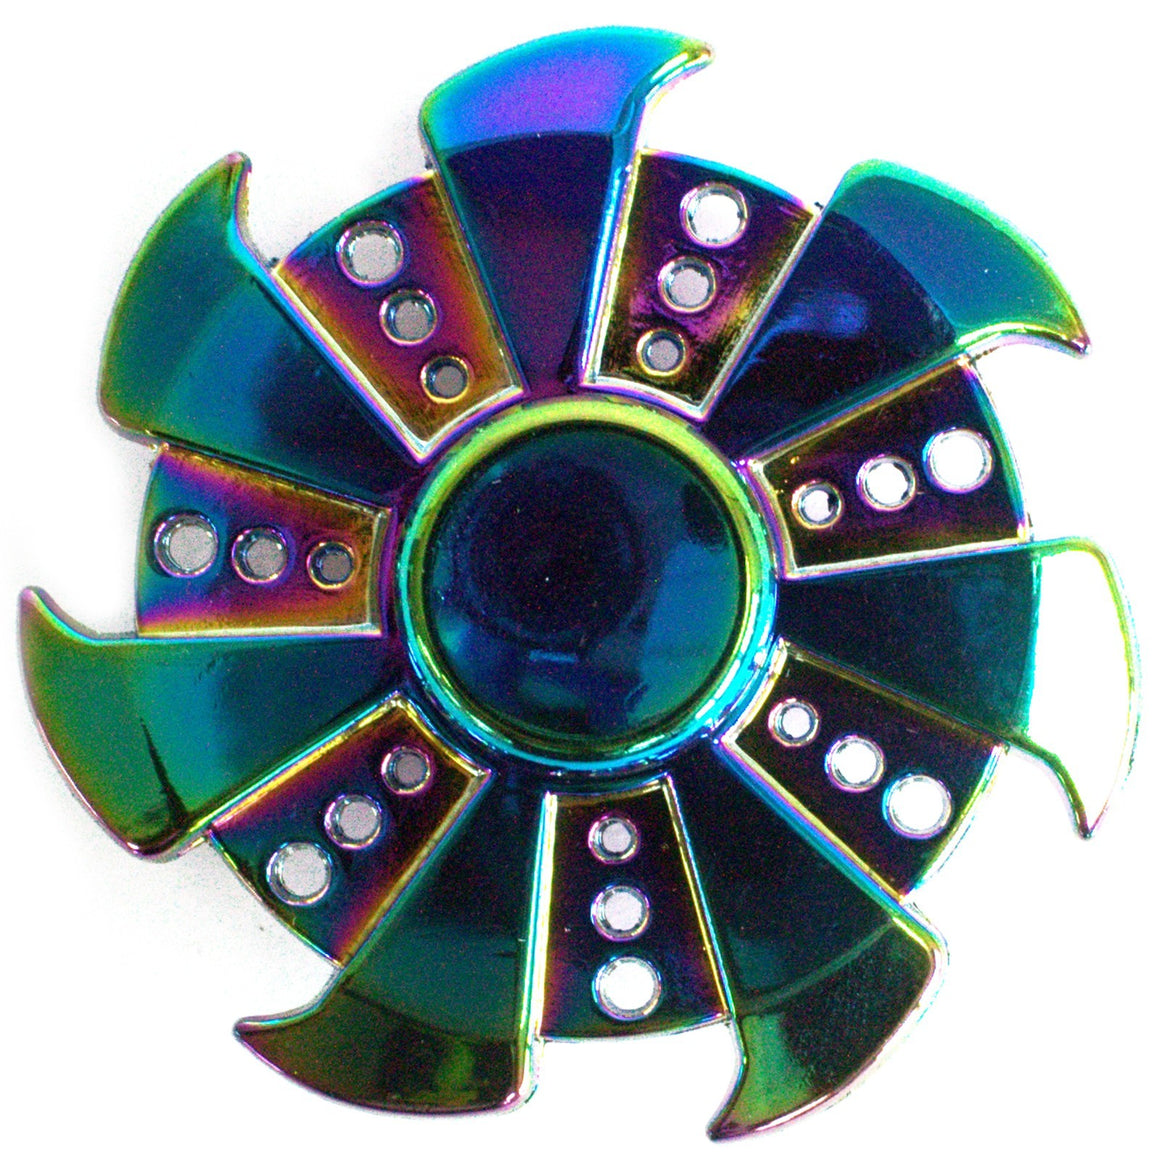 Metal Fidget Spinner - Seven Wings - Rainbow